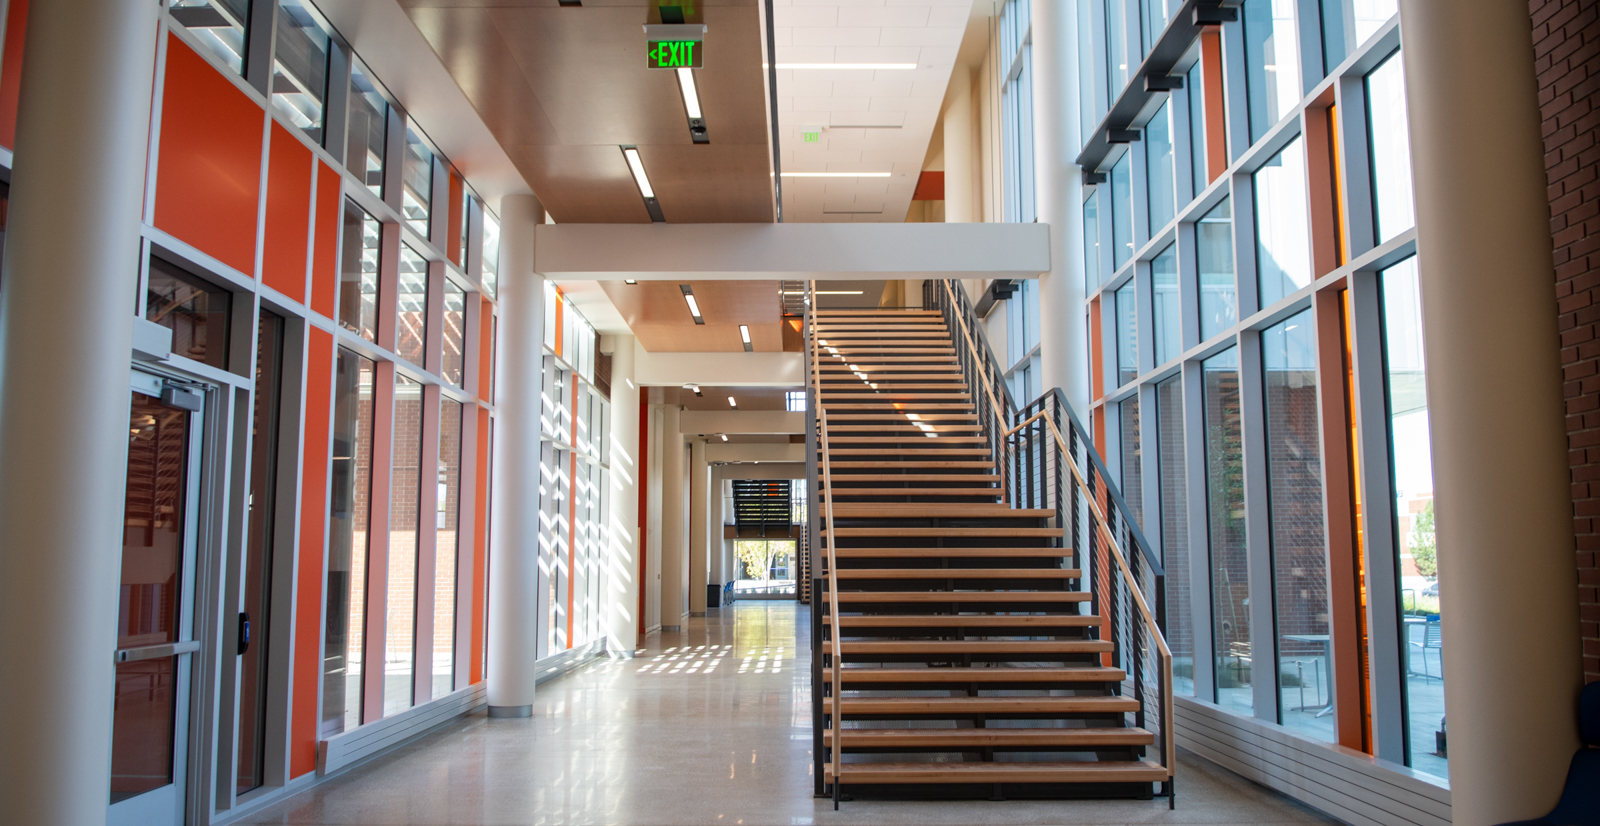 View of hallway and staircase inside the Materials Research building